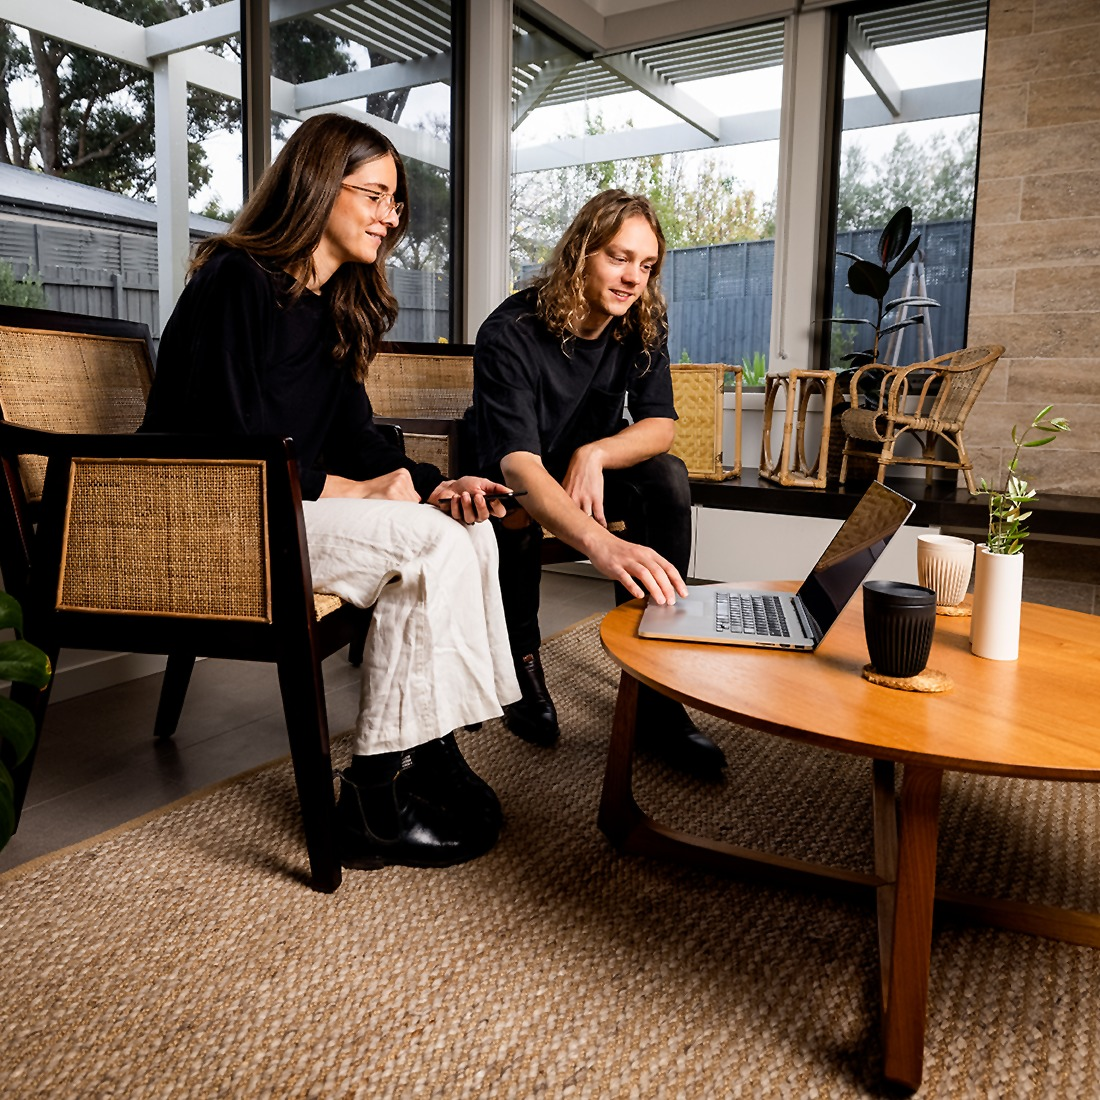 Phoebe and Tom Simpson sitting on a chair with a laptop